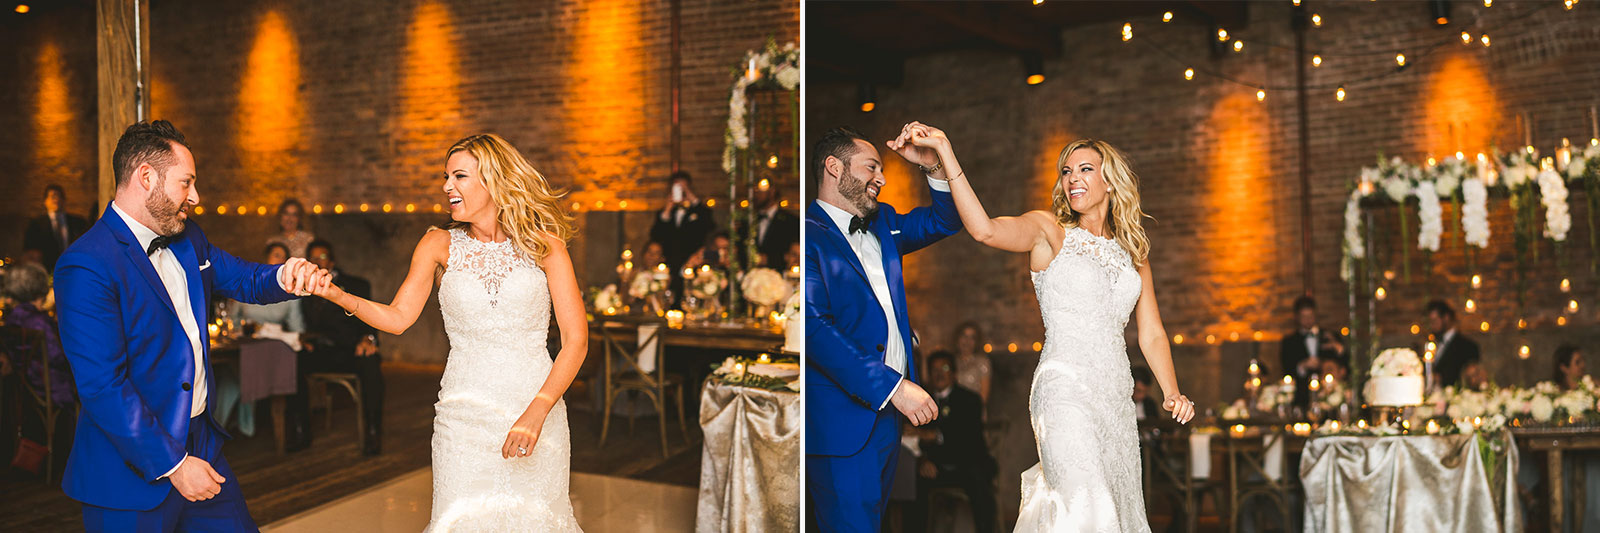 58 bride and groom first dance photos - Chicago Wedding Photography at Gallery 1028 // Courtnie + David